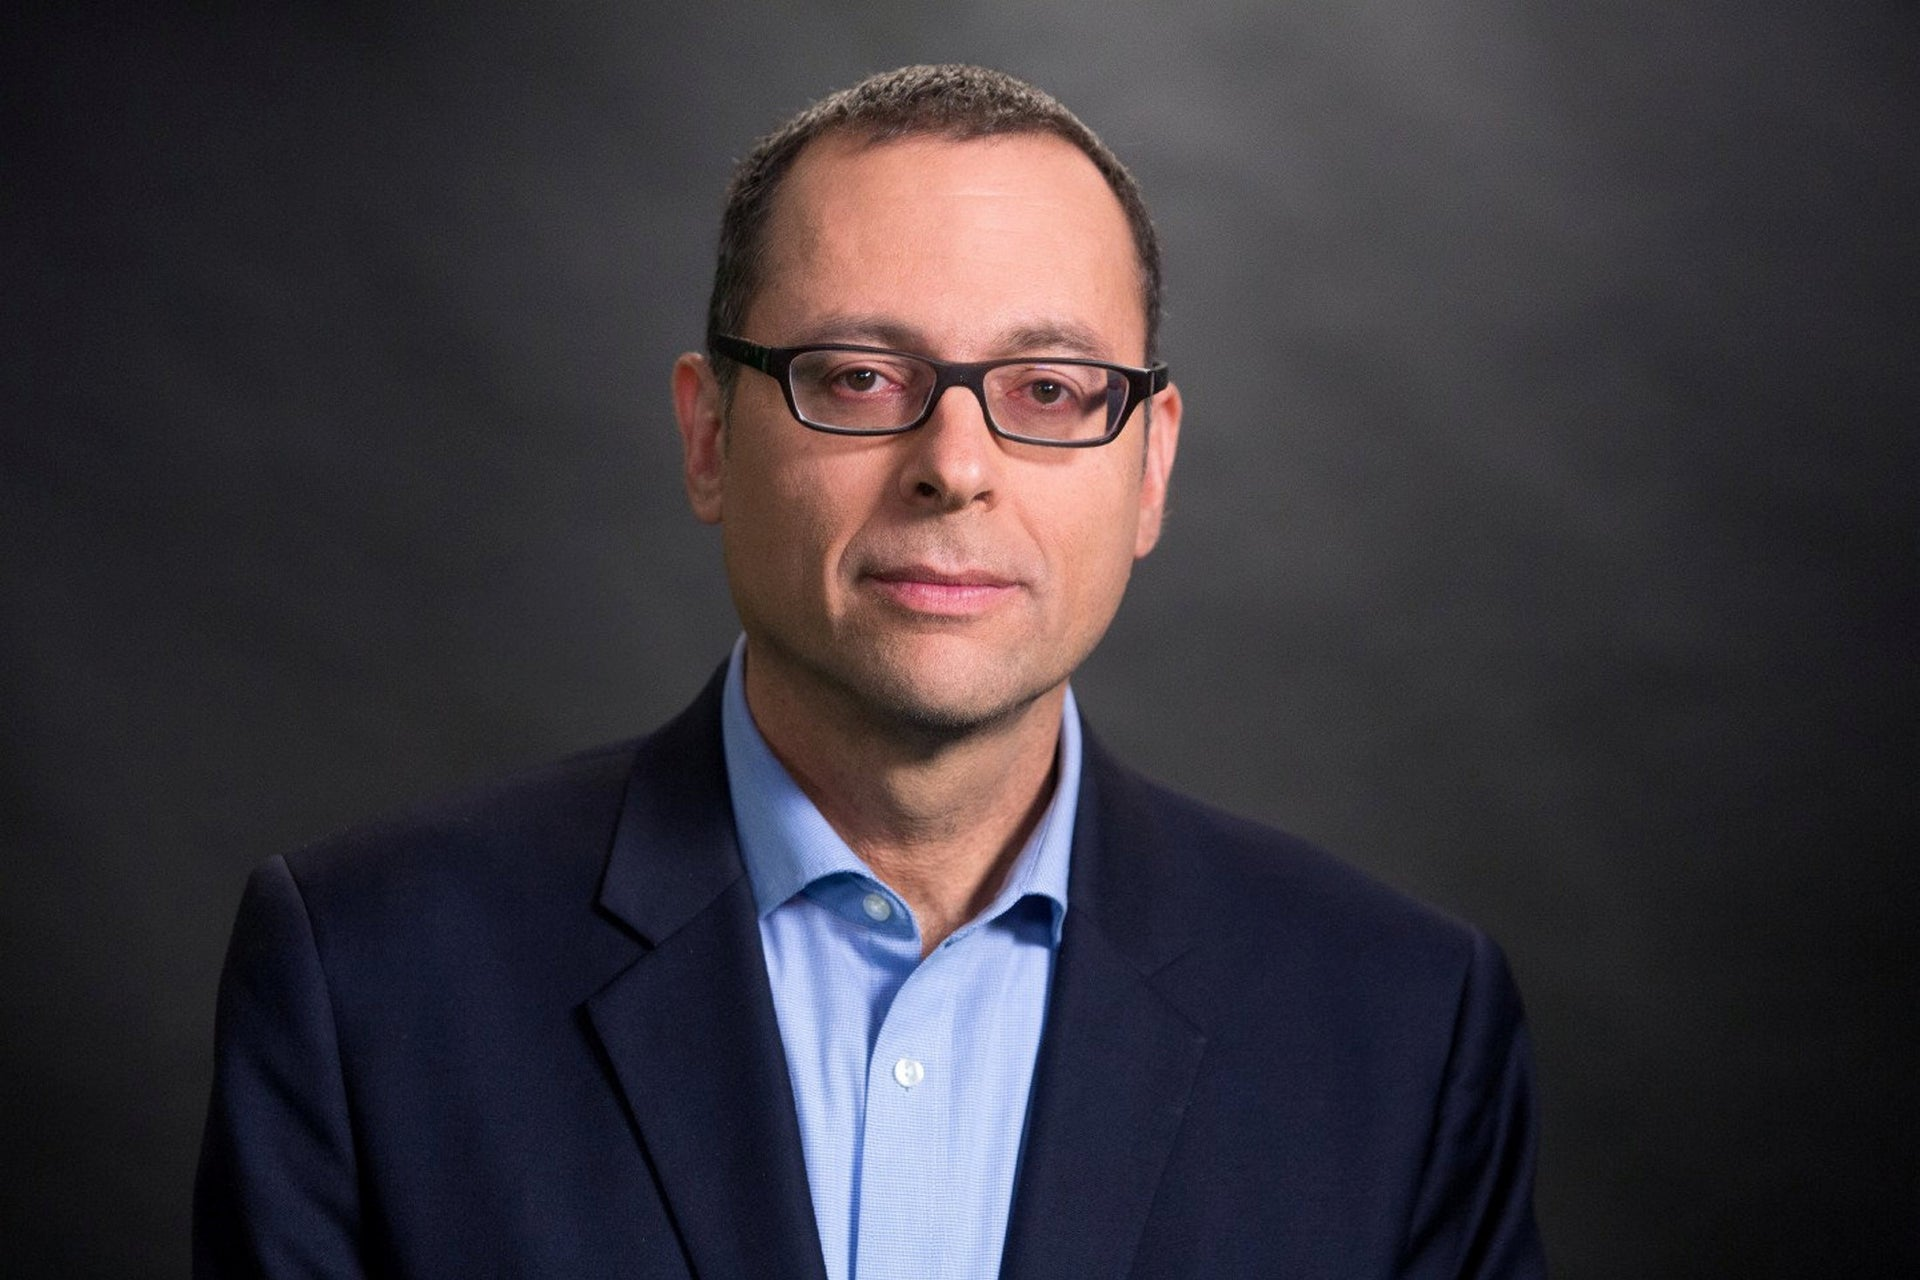 Zvi Hauser, a former Netanyahu cabinet secretary, was hired as a lobbyist to promote the nation-state law. Hauser is currently running against Netanyahu, as part of the Kahol Lavan ticket